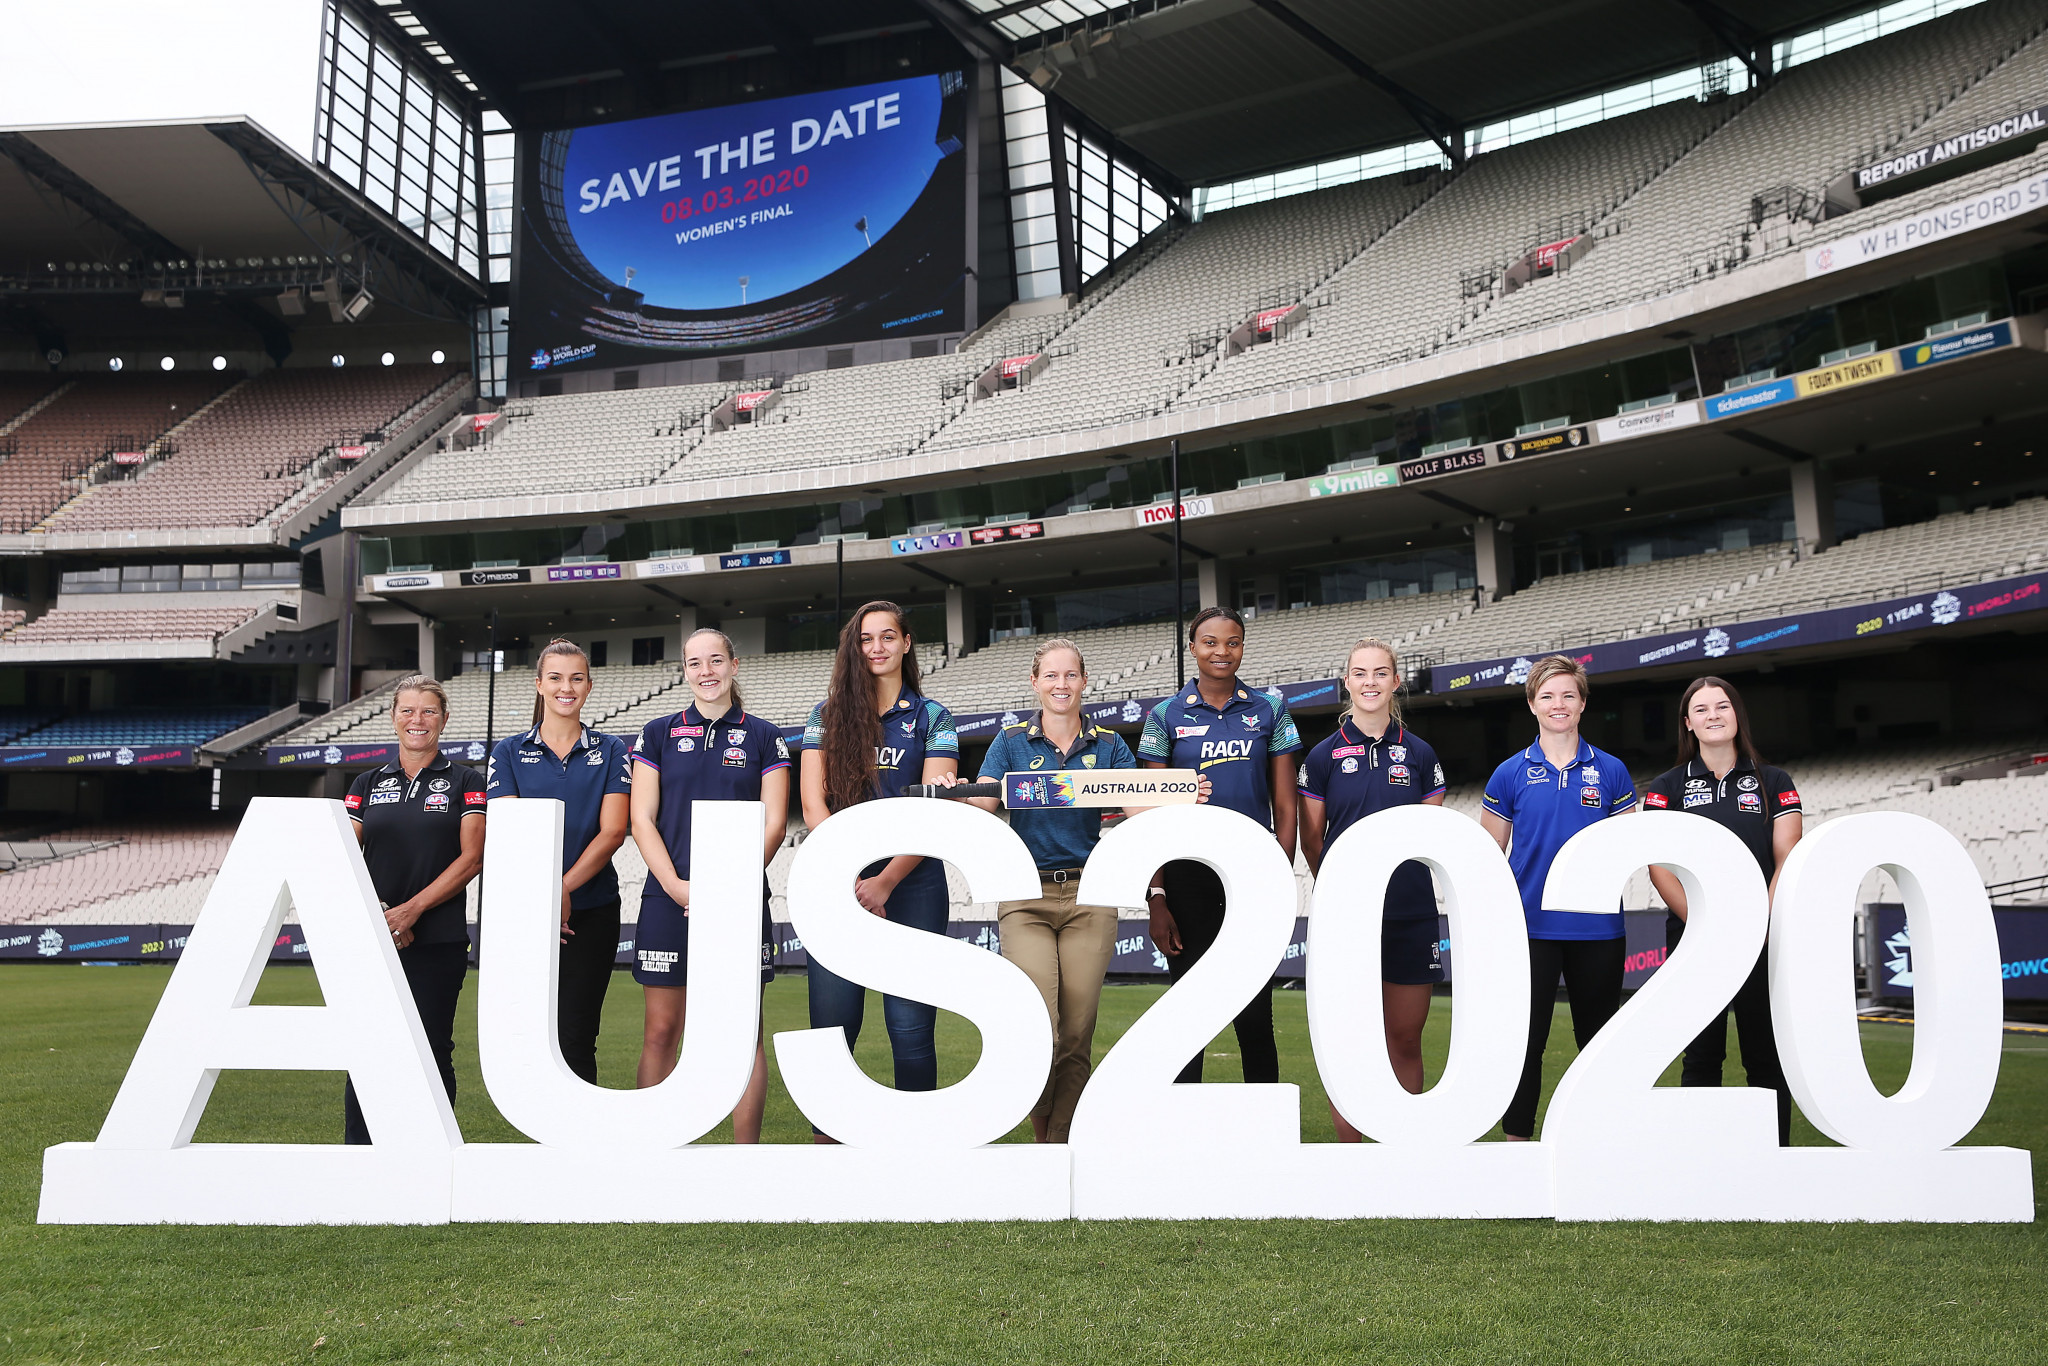 Won by Australia against India, the ICC Women's T20 World Cup 2020 attracted 1.1 billion video views and 5.4 billion viewing minutes in India ©Getty Images